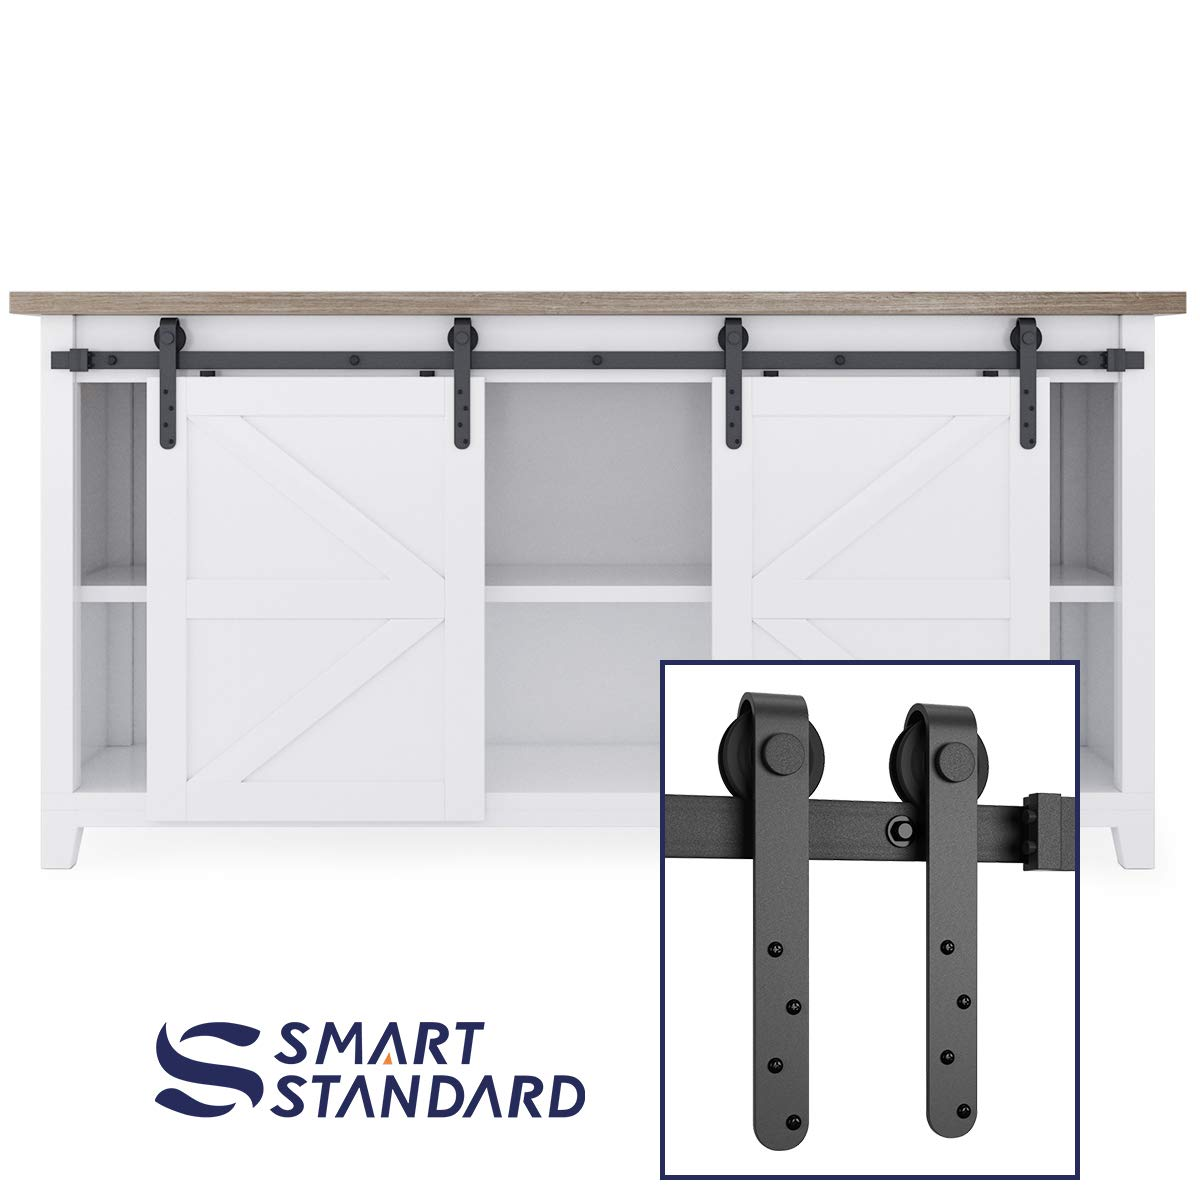 6ft Double Door Cabinet Barn Door Hardware Kit- Mini Sliding Door Hardware - for Cabinet TV Stand-Simple and Easy to Install - Fit 24'' Wide Door Panel (Cabinet Not Included) (Mini J Longer Hangers)